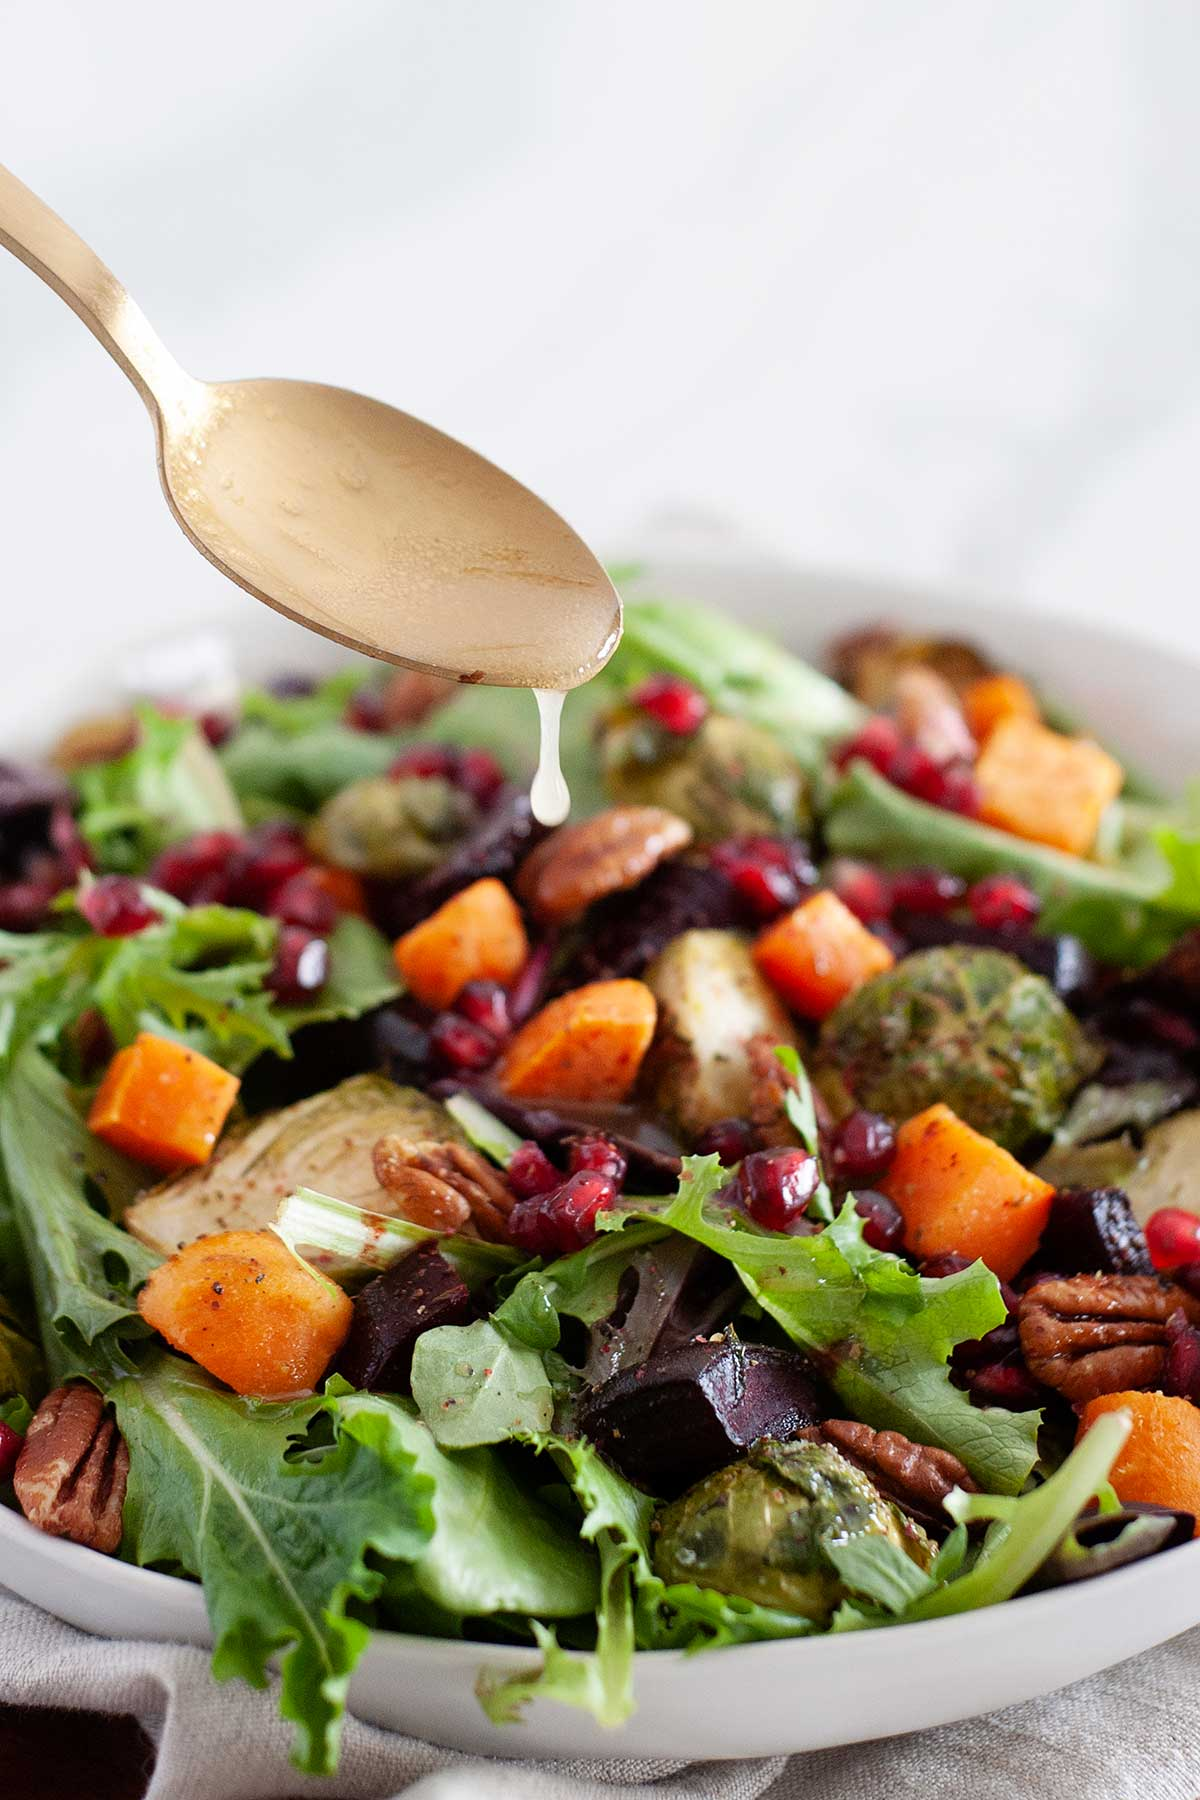 pouring dressing over winter salad with a spoon